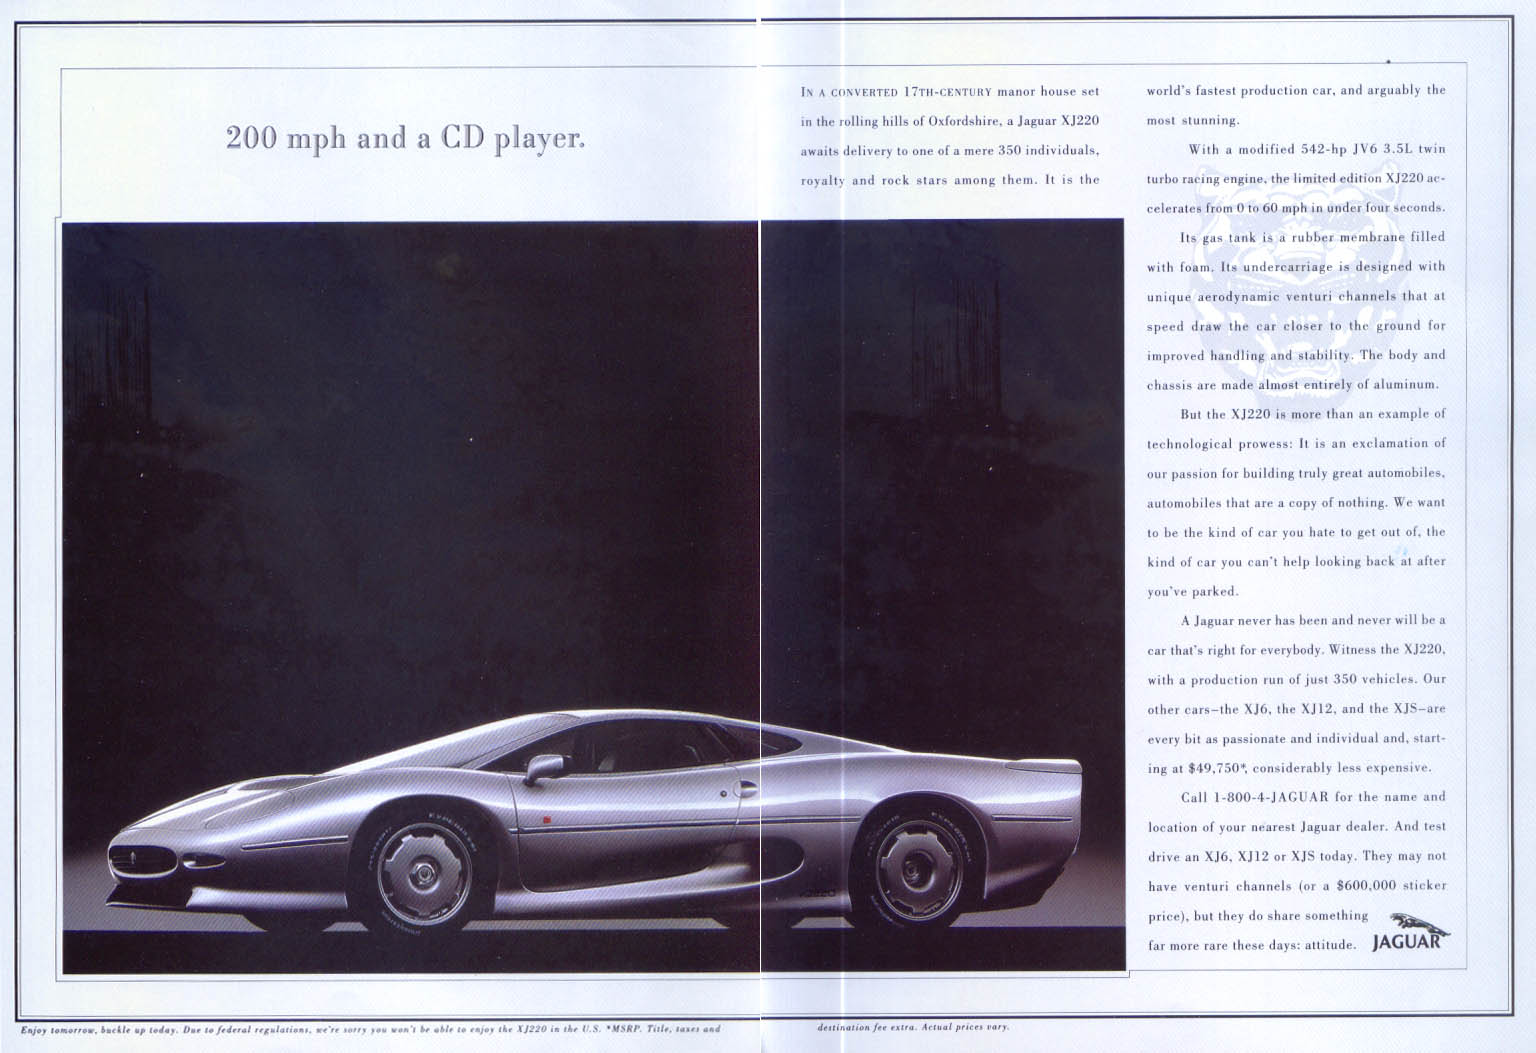 Jaguar XJ220 world's fastest production car ad 1990